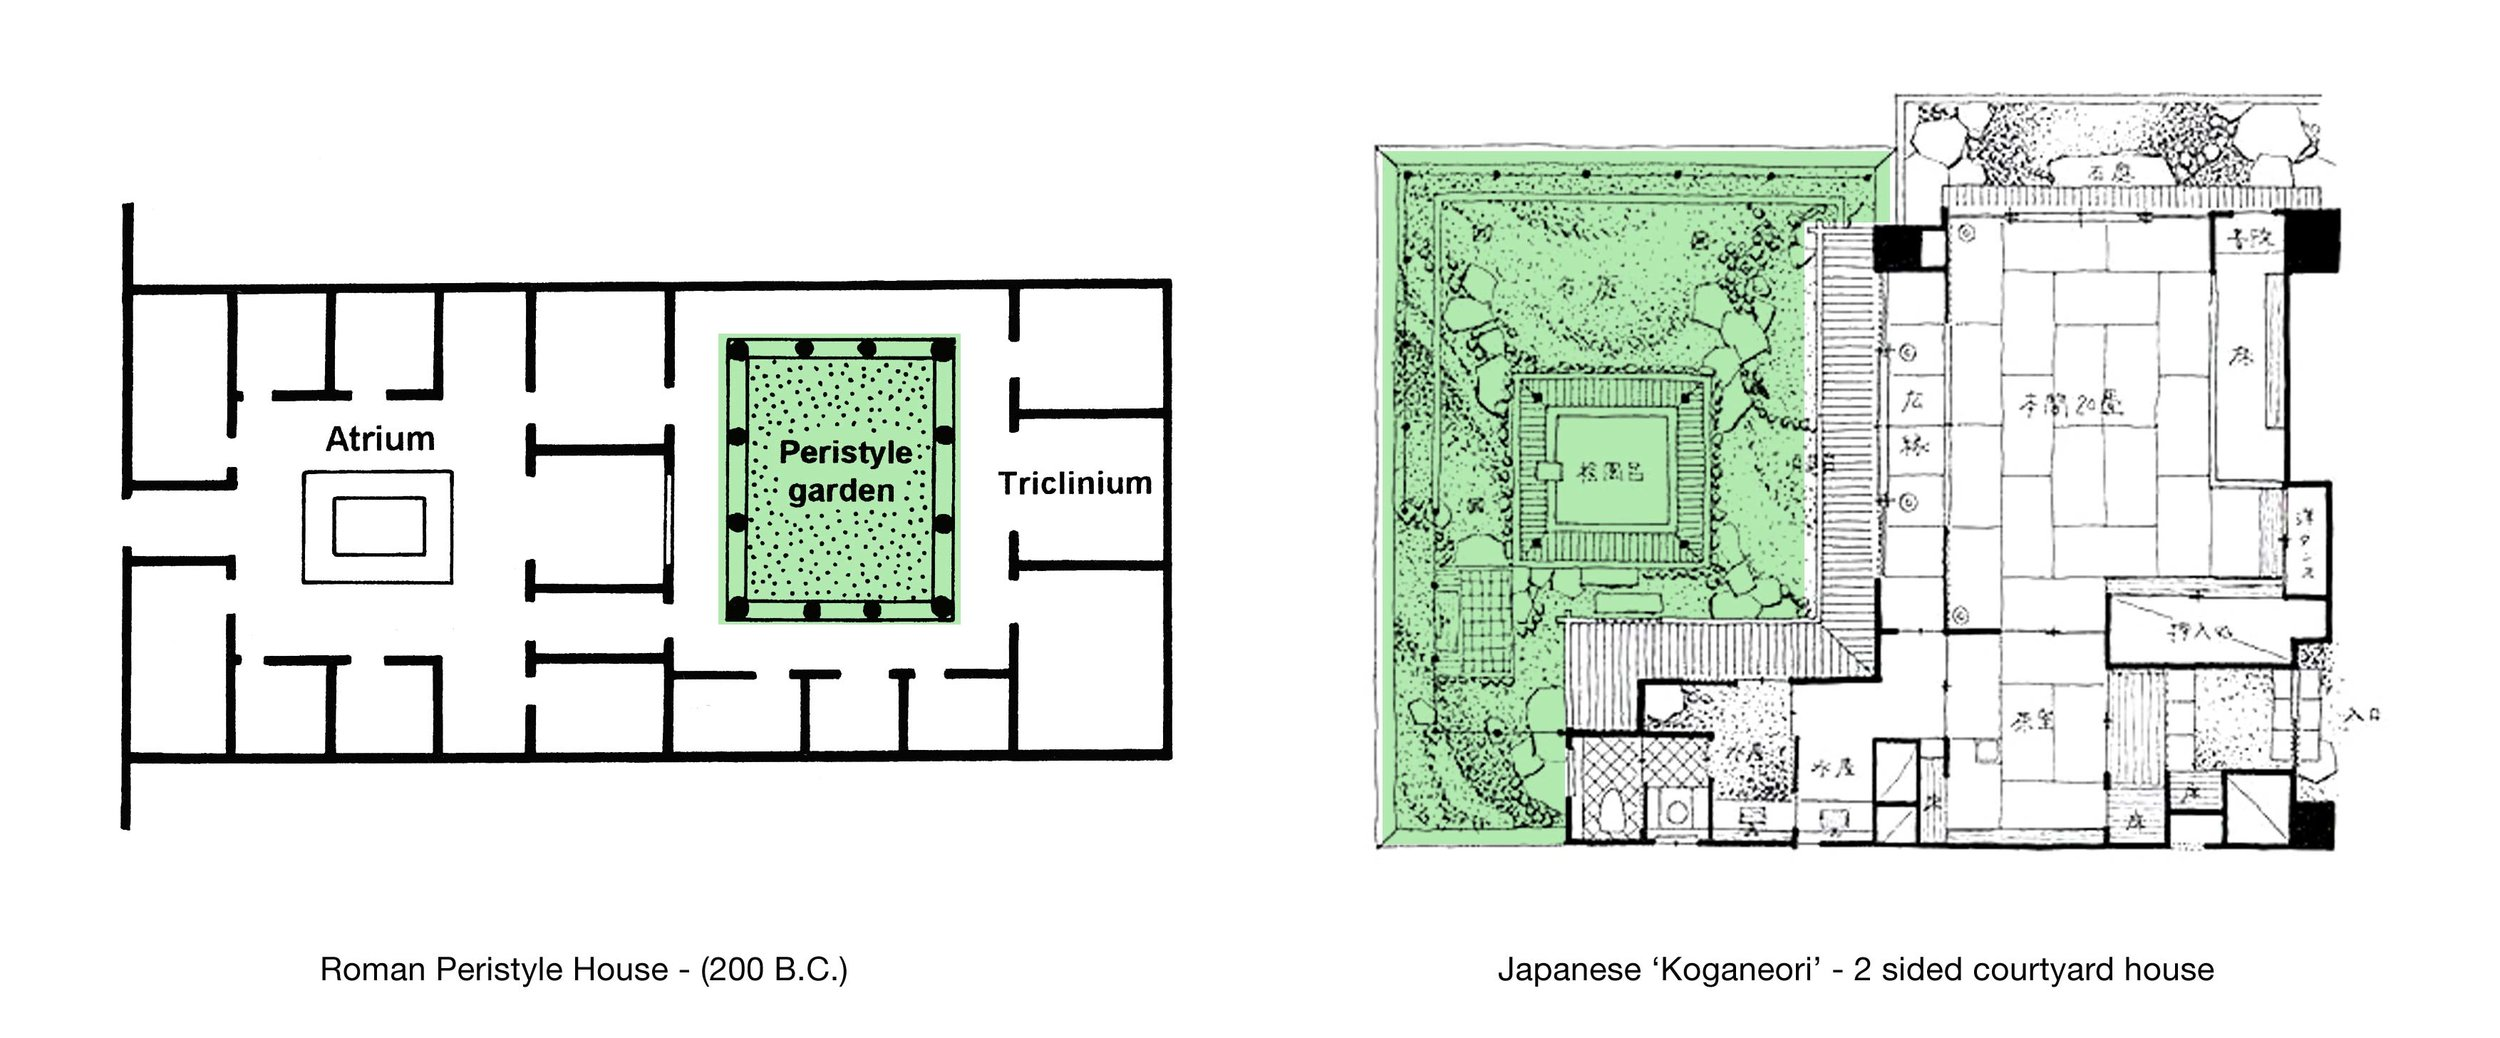 courtyard-plans_web.jpg